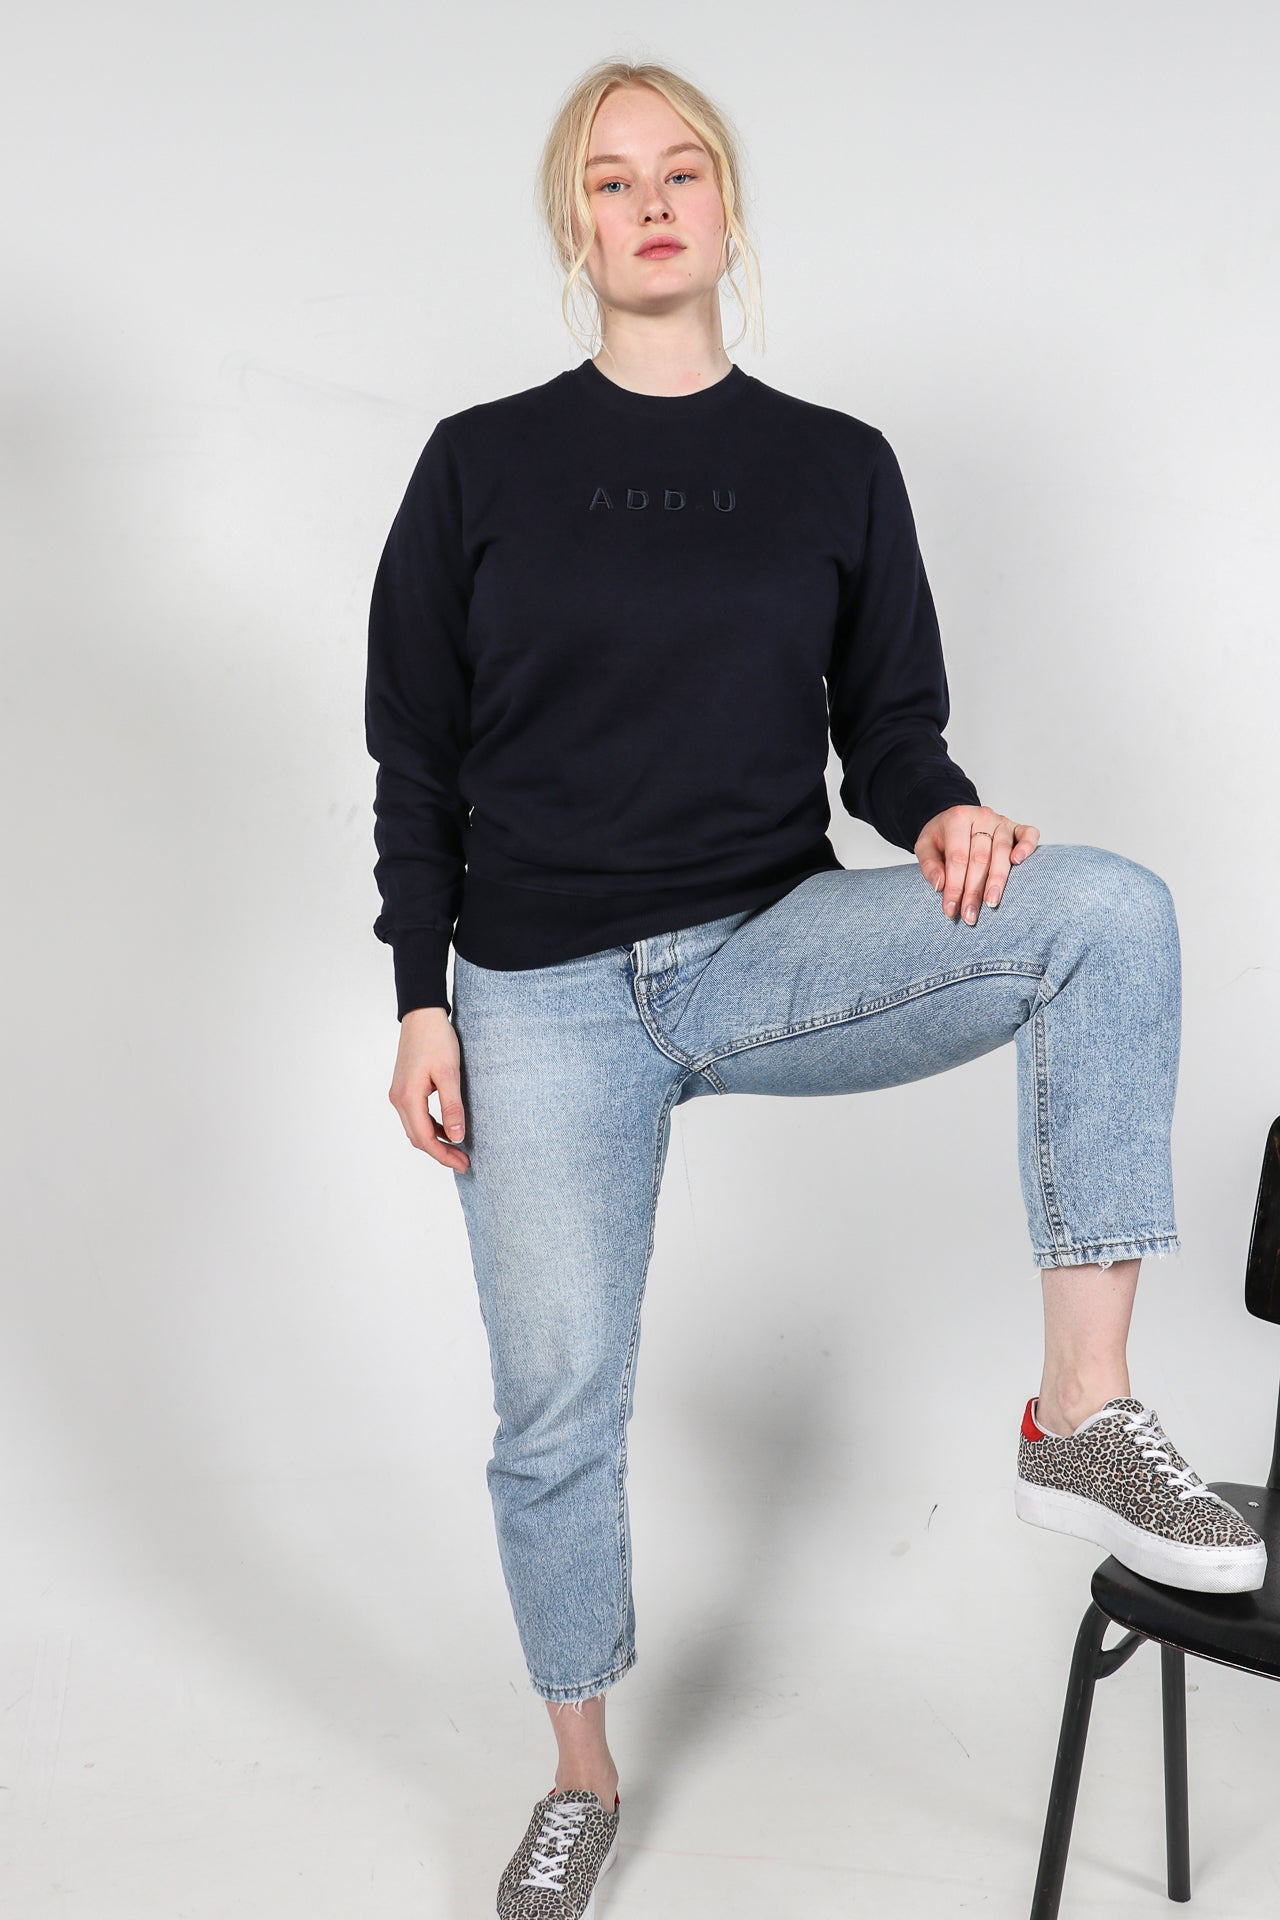 Skyhigh navy biologisch katoen sweater / women